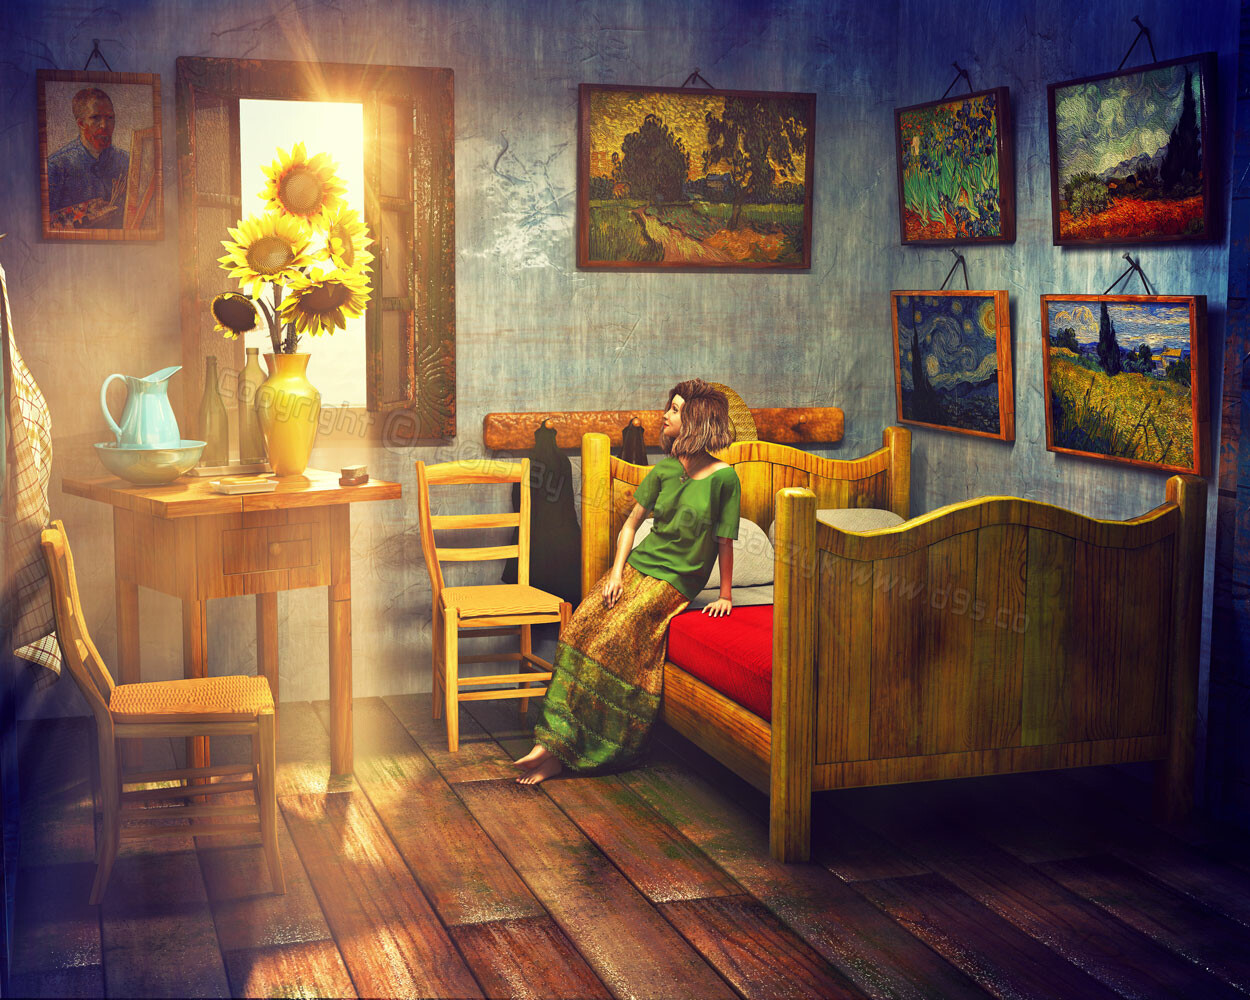 The sunlight filters through the window of Vincent's bedroom as the girl admires his lovely vase of sunflowers.